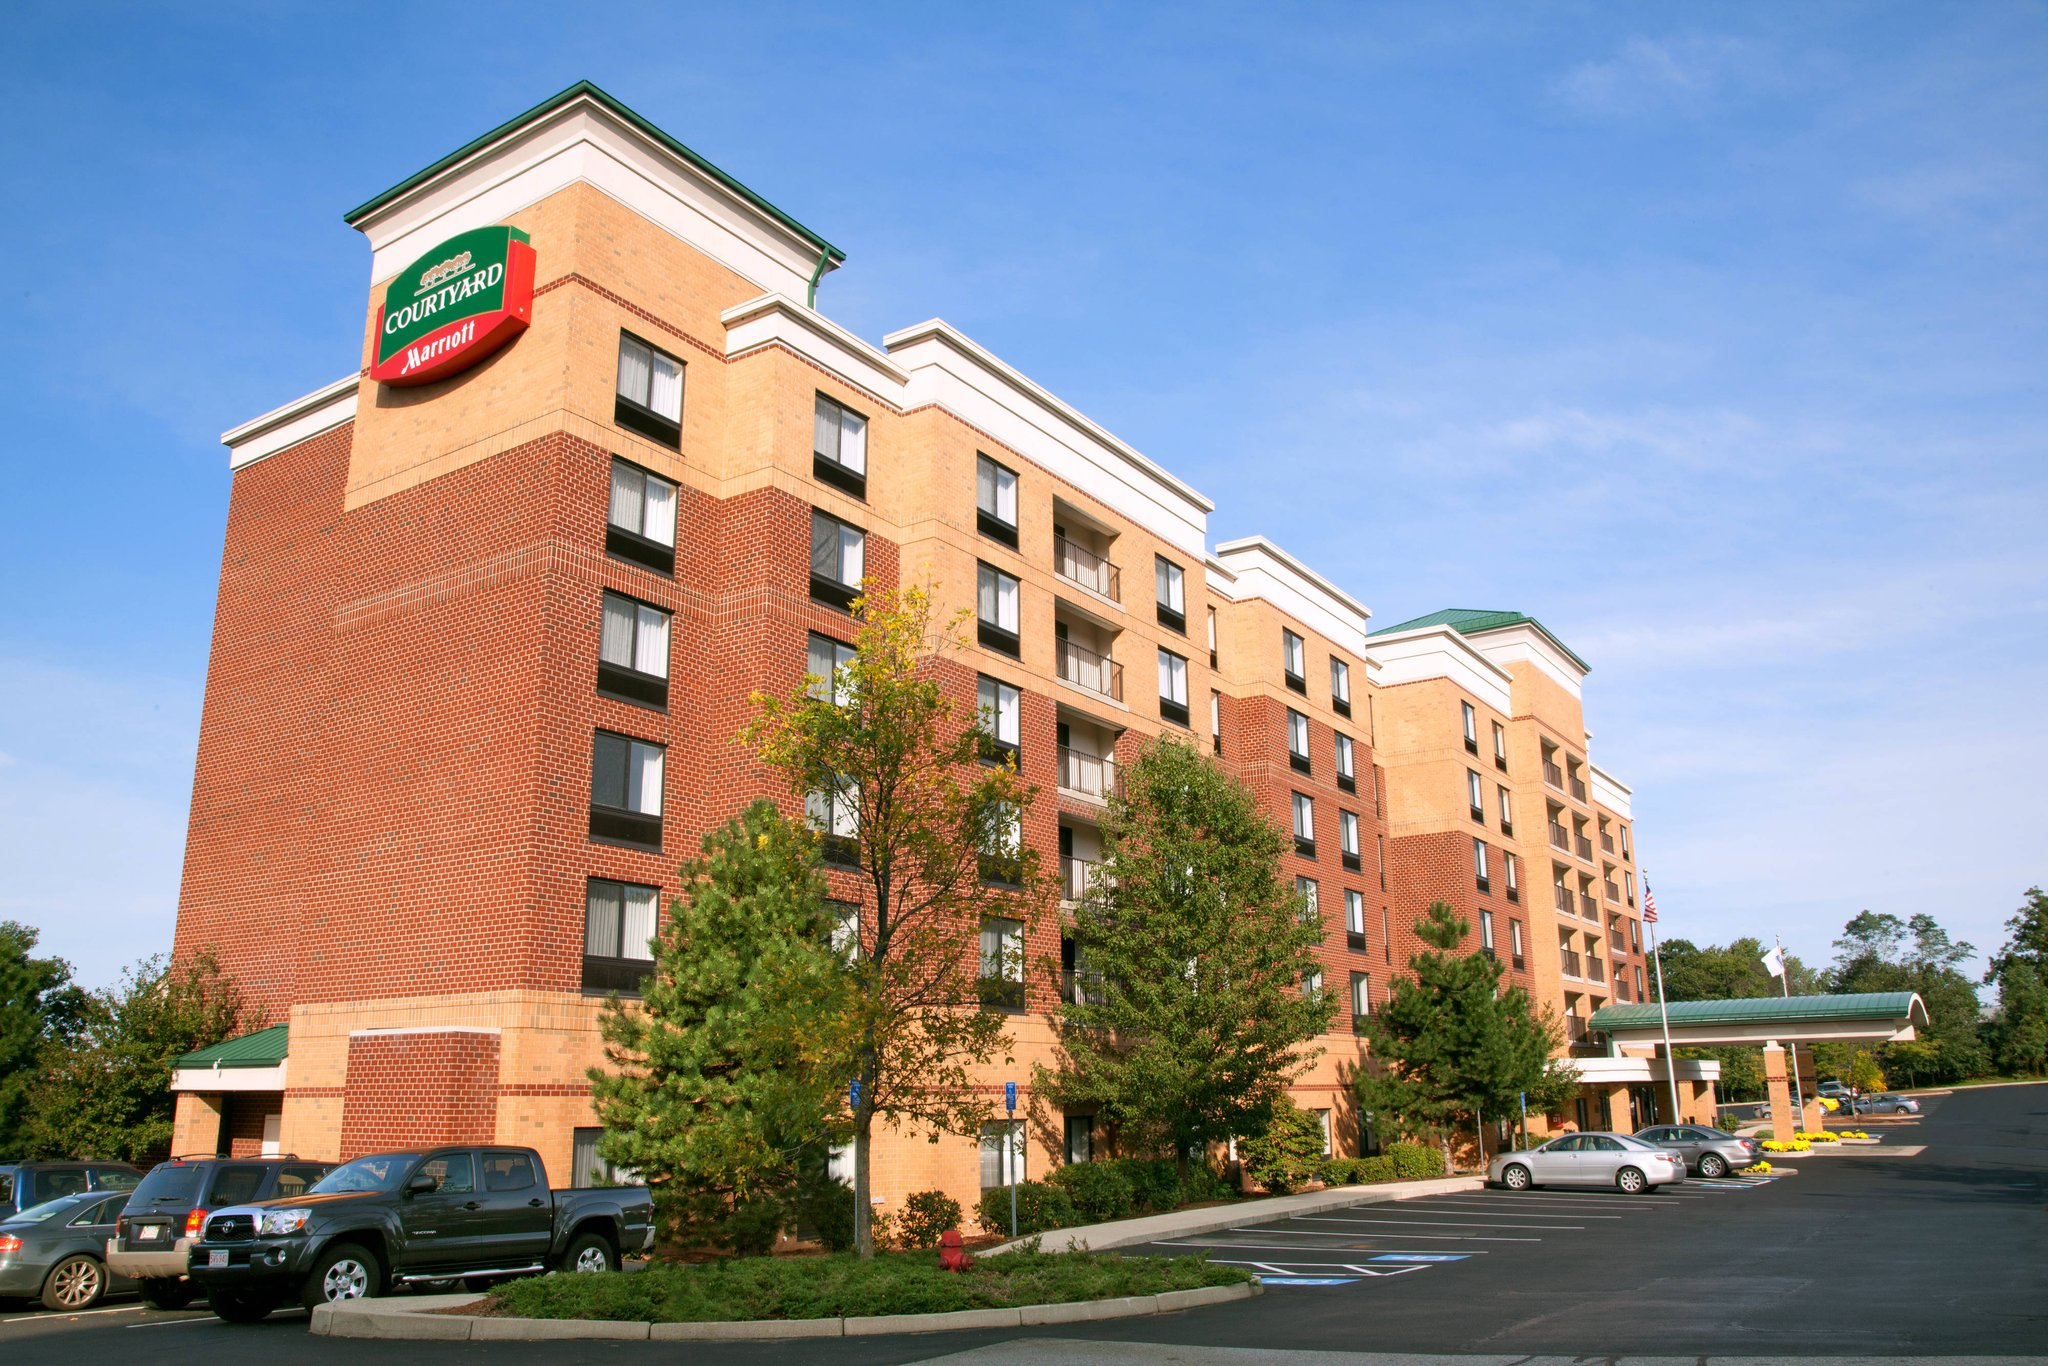 Courtyard by Marriott Boston/Woburn